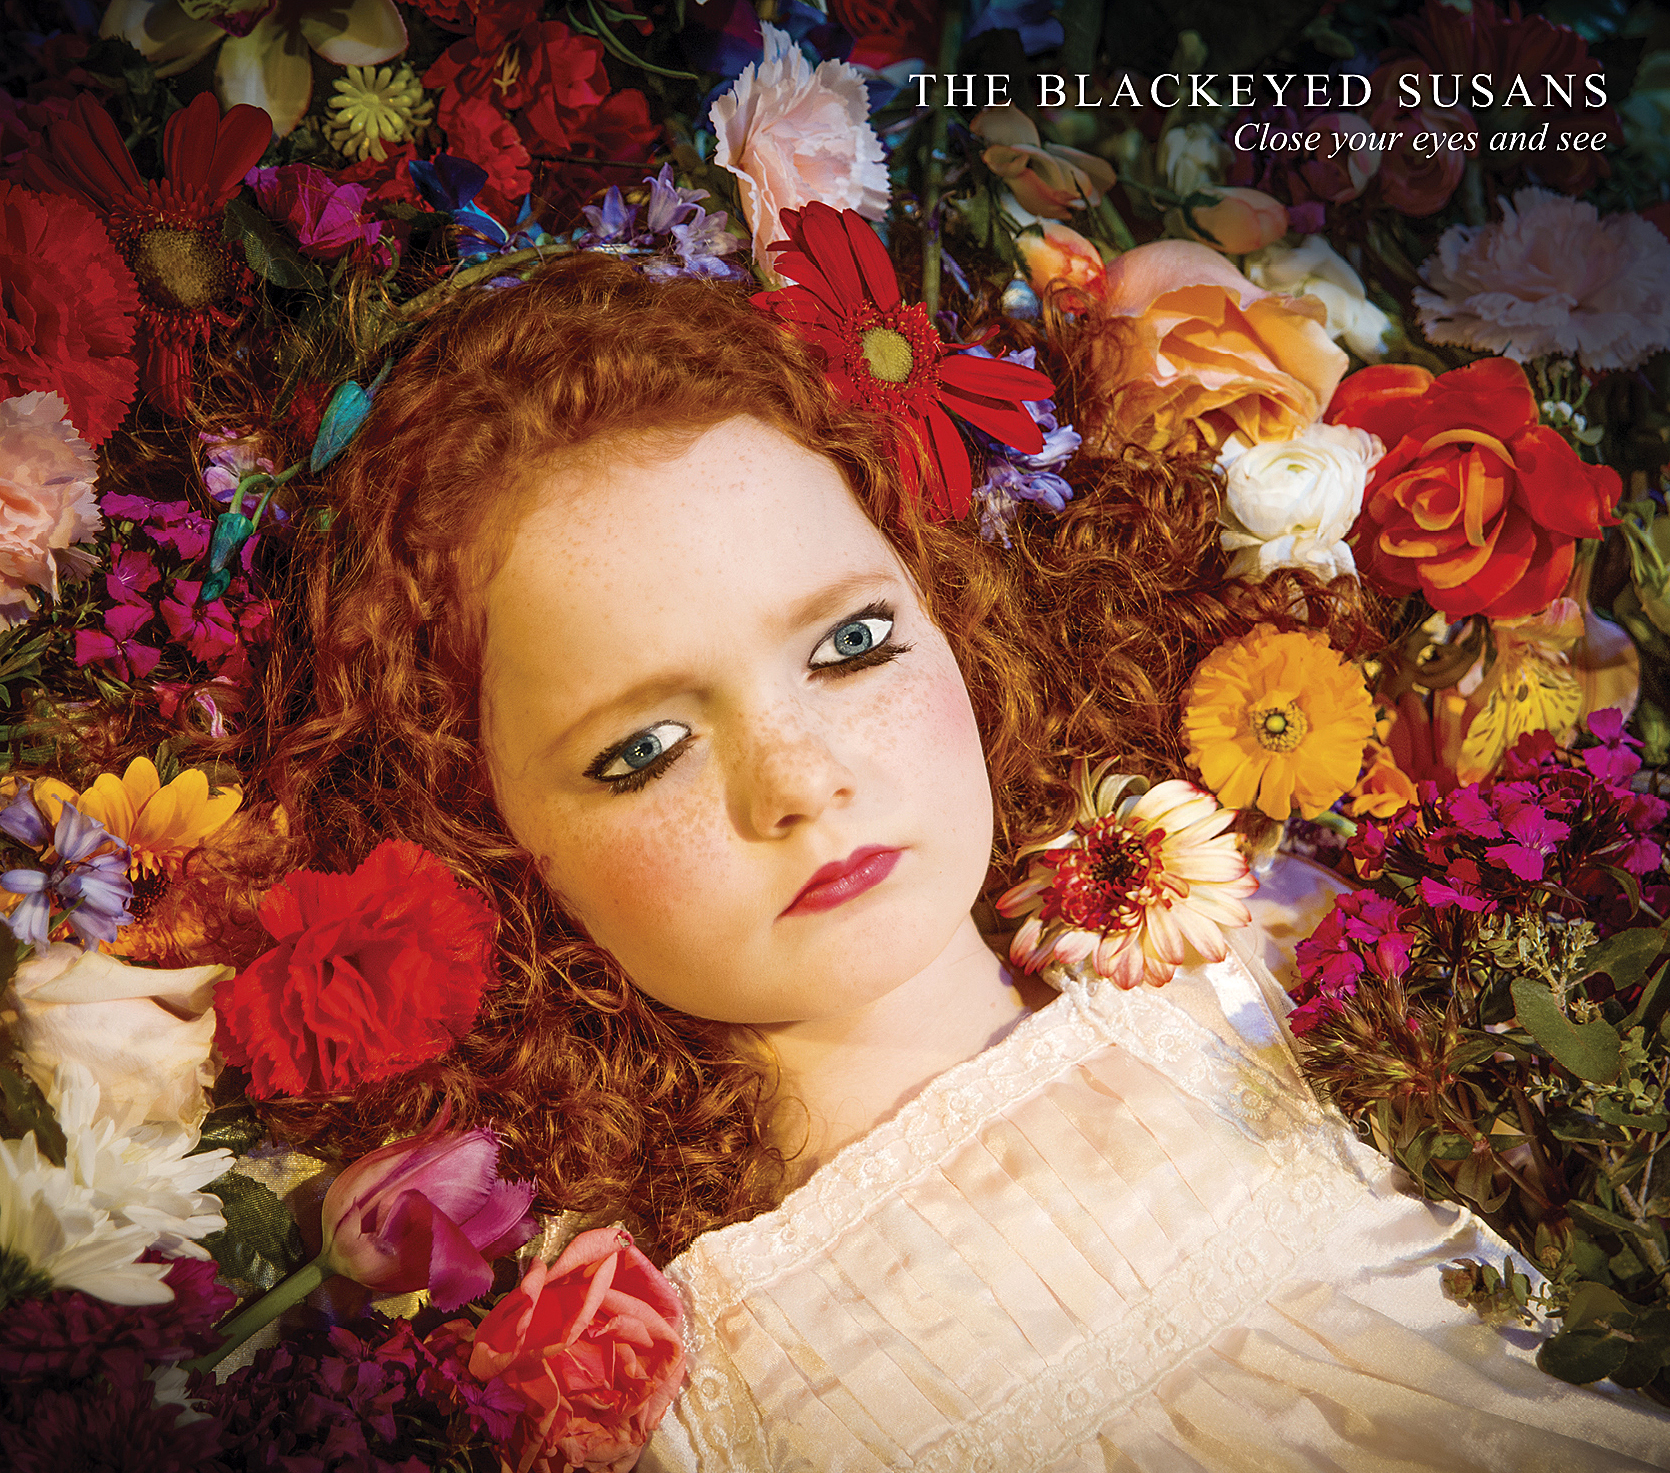 The Blackeyed Susans – Close Your Eyes and See